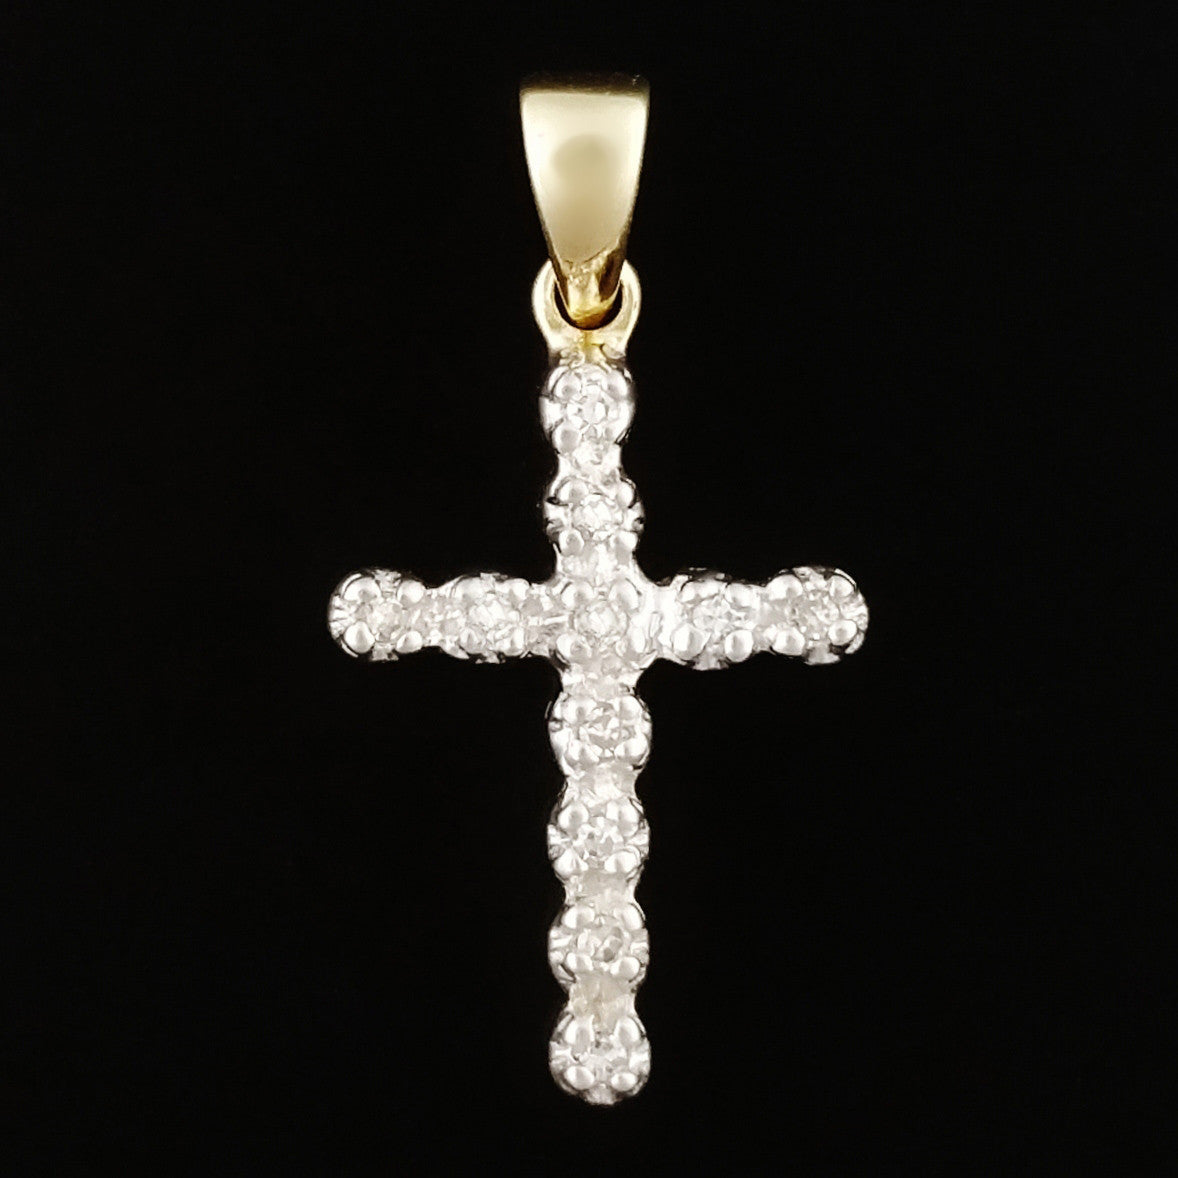 9K SOLID GOLD CROSS PENDANT WITH 11 DIAMONDS.